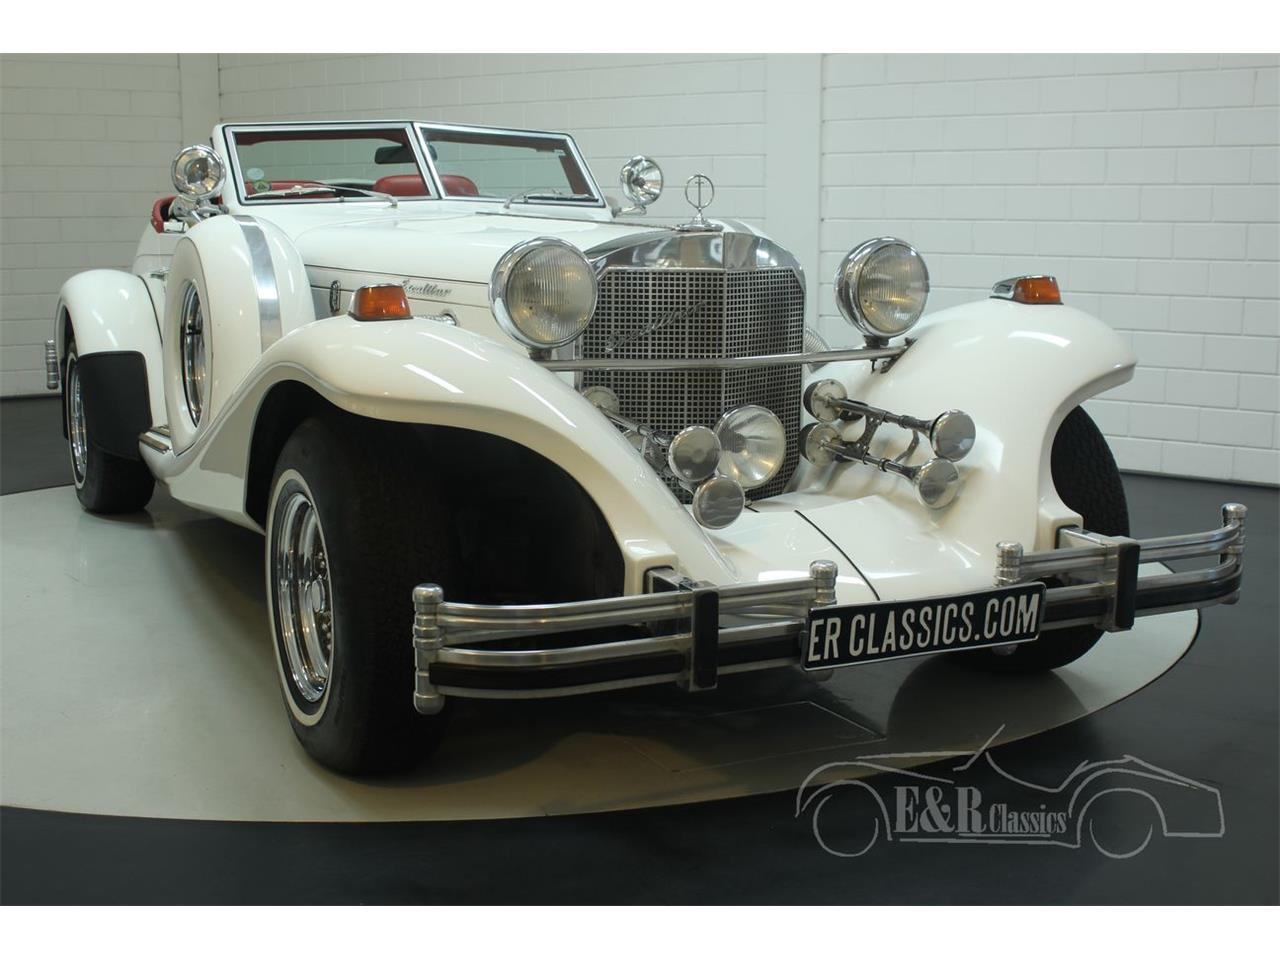 Large Picture of '82 Series IV Phaeton located in Waalwijk noord brabant - $78,450.00 Offered by E & R Classics - Q3GF